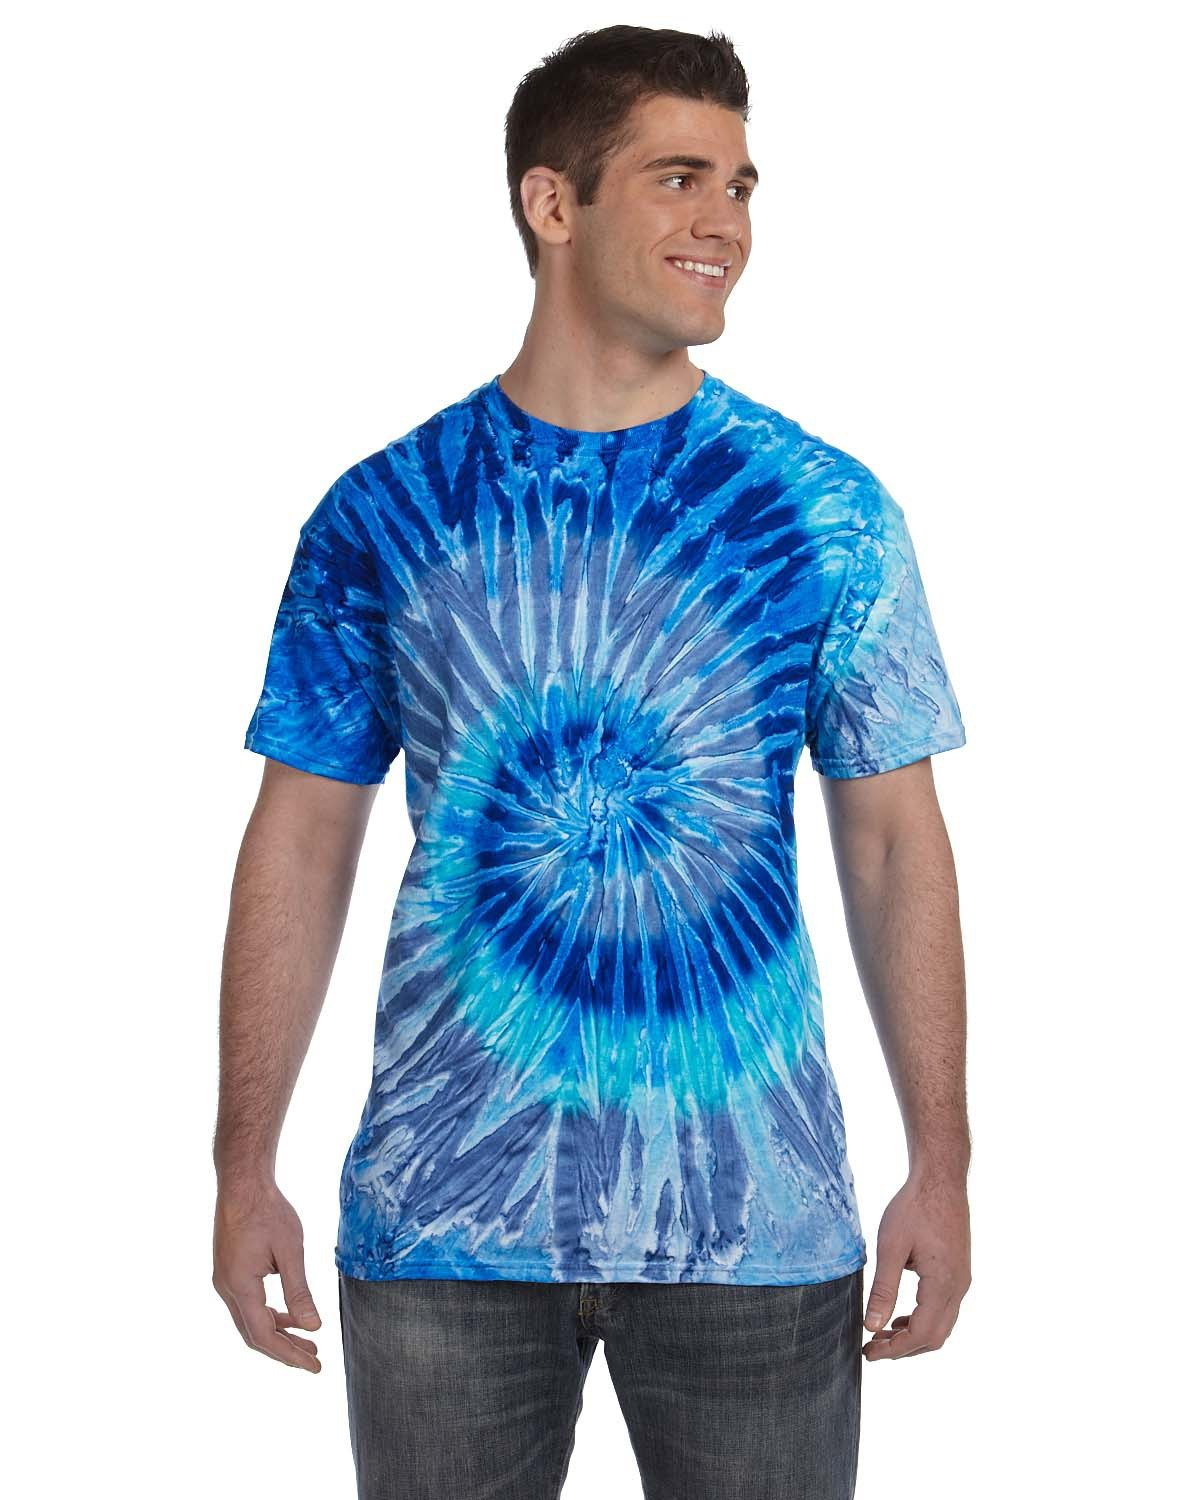 Tie-Dye Adult 5.4 oz., 100% Cotton T-Shirt BLUE JERRY